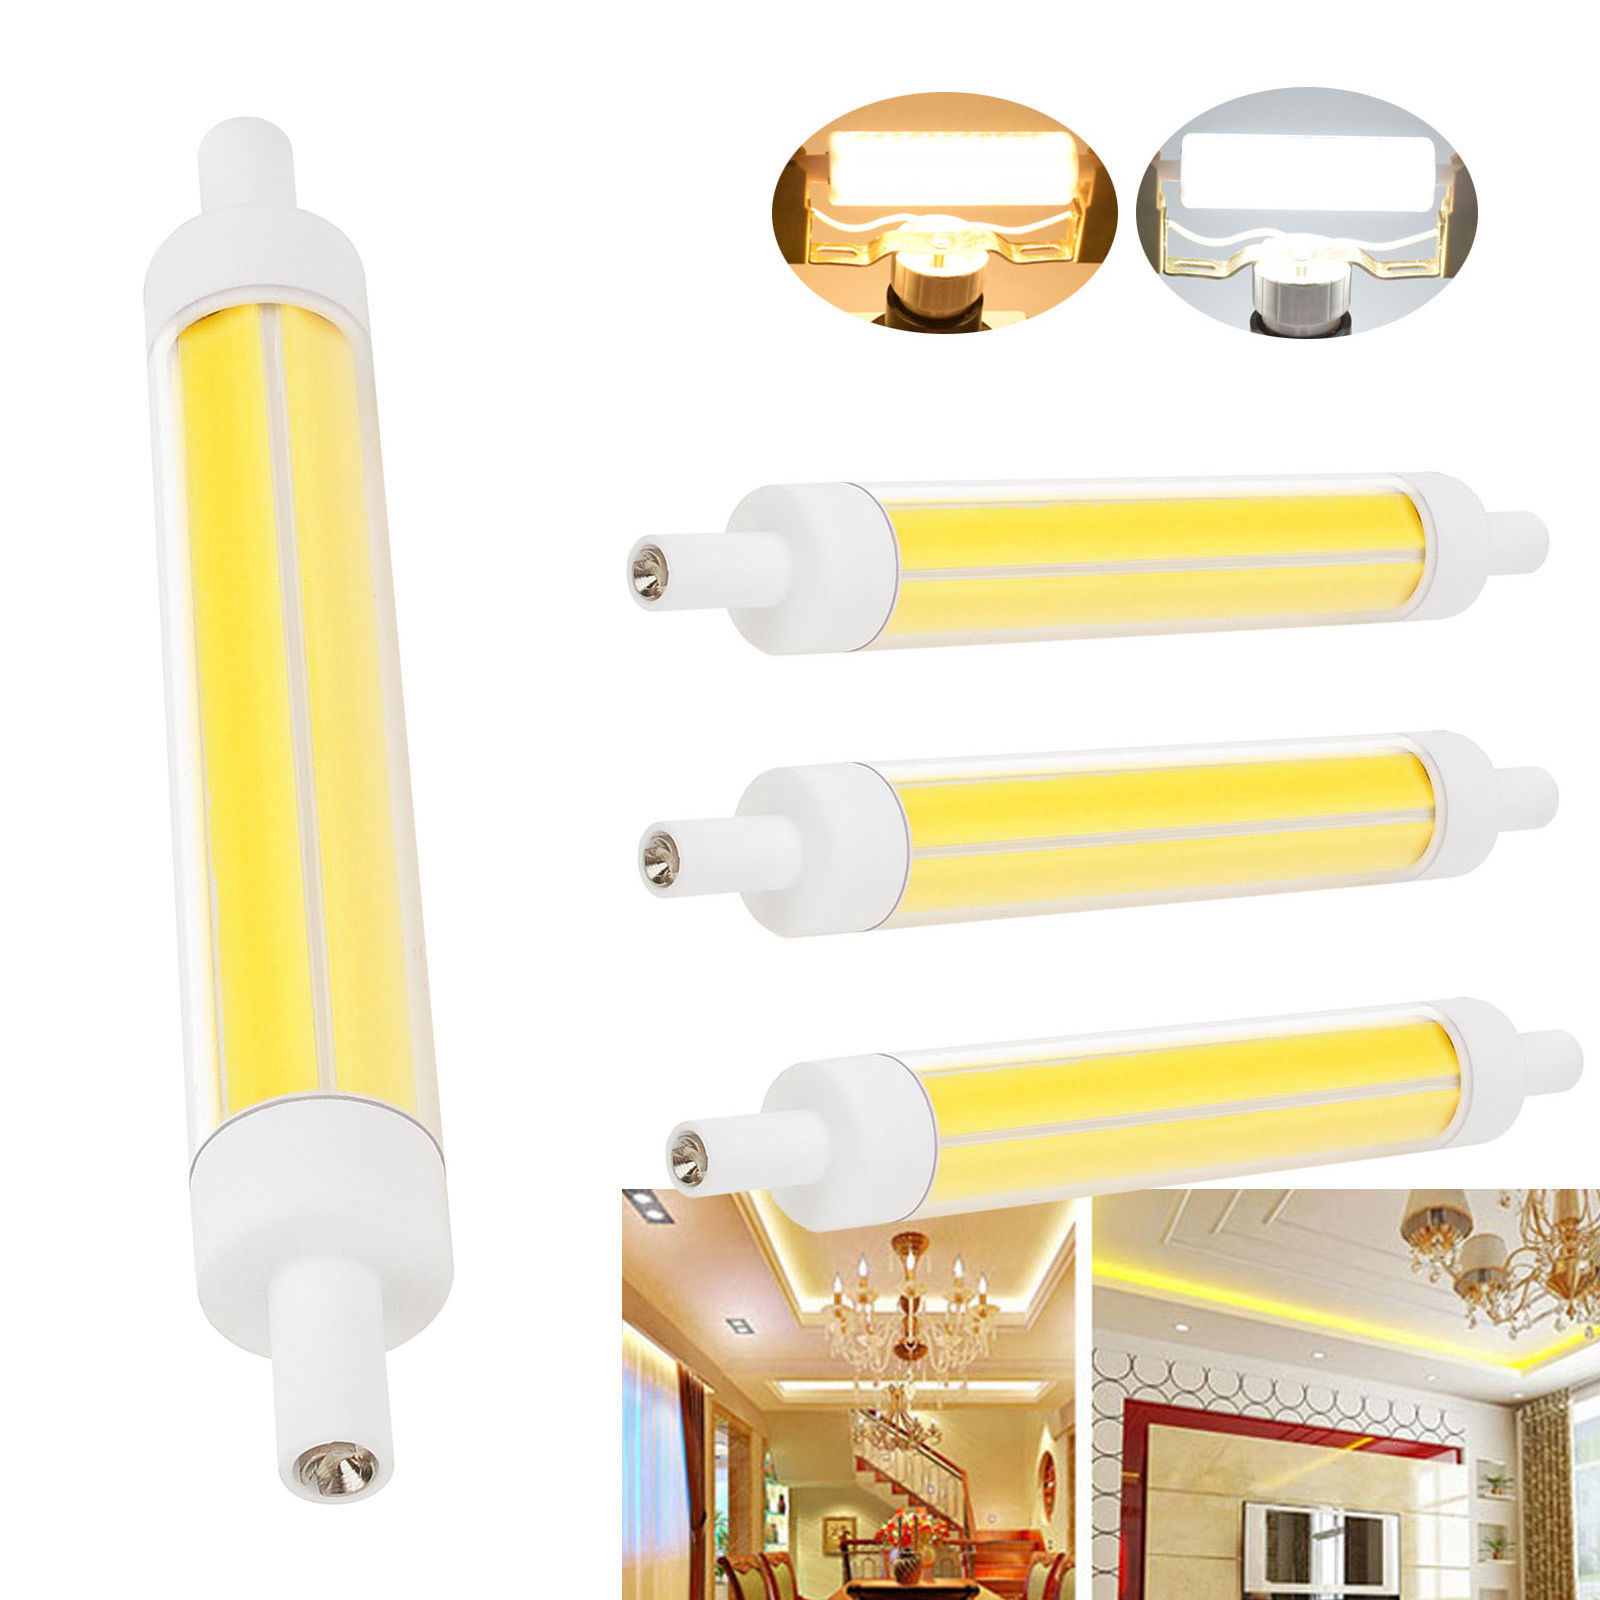 Dimmable Ampoule <font><b>R7S</b></font> <font><b>LED</b></font> COB Bulb Floodlight 15W 220V J118 <font><b>118mm</b></font> AC 220VCeramic Replace Halogen Spotlight Glass Lamp <font><b>Bombillas</b></font> image